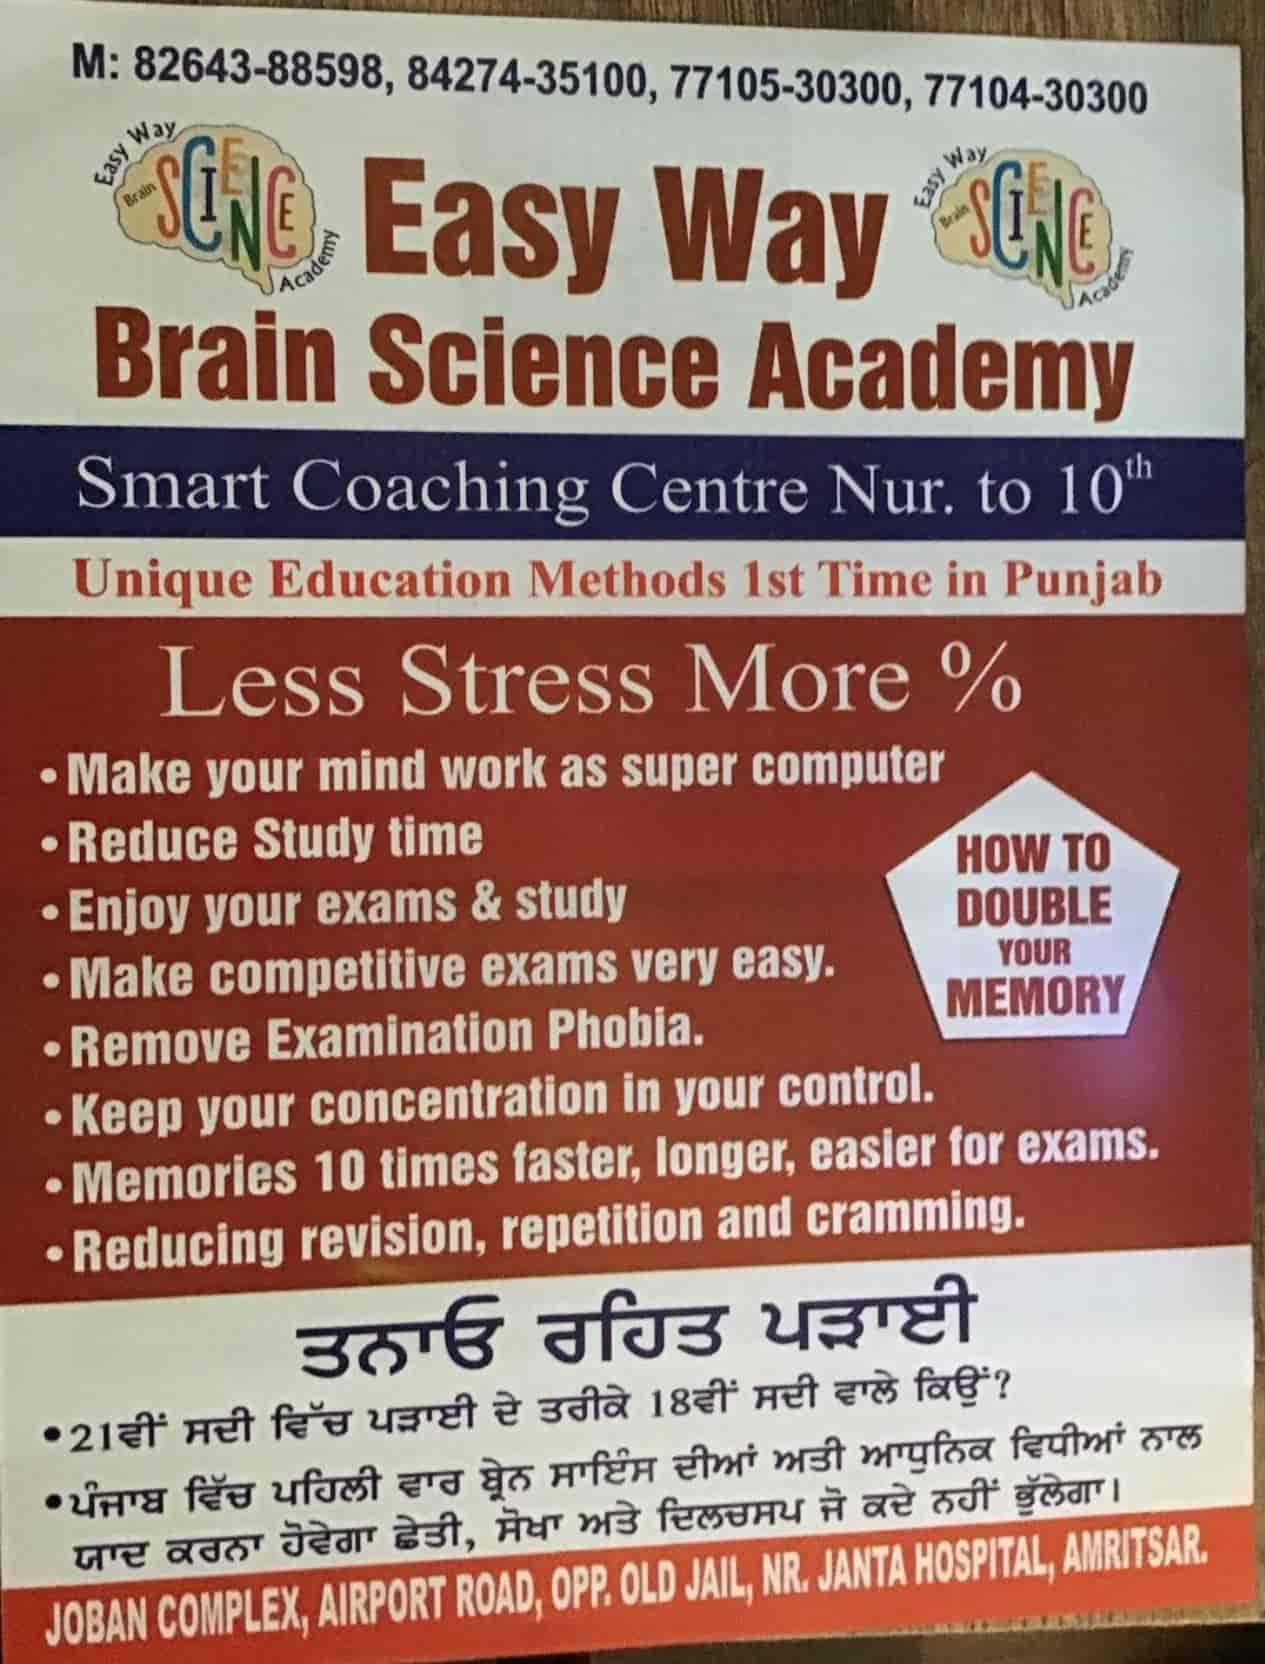 Easy Way Brain Science Academy Photos, Amritsar GPO